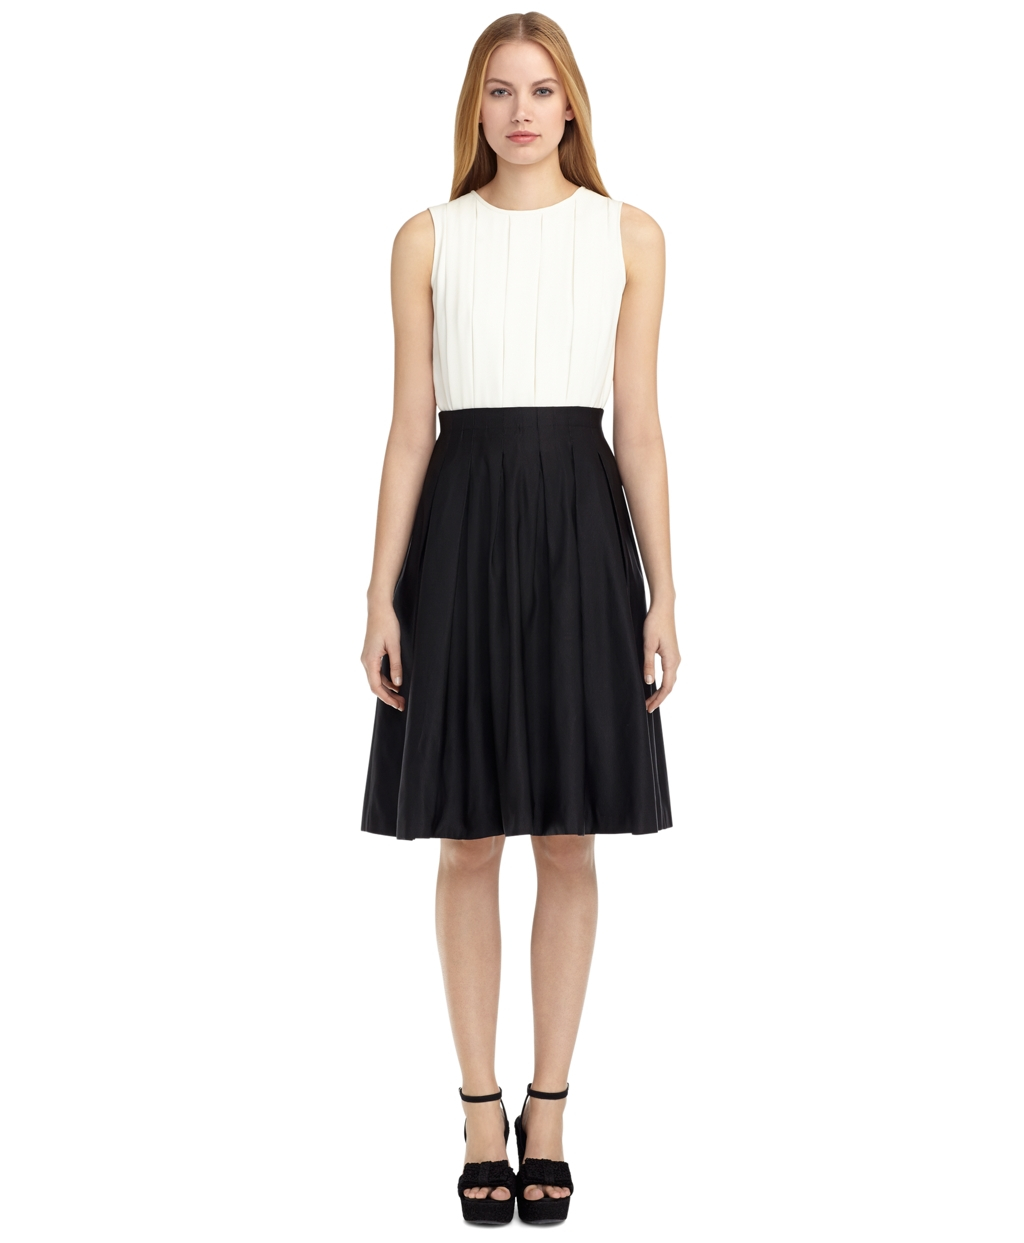 Shop full skirt bodice dress at Neiman Marcus, where you will find free shipping on the latest in fashion from top designers. Roland Mouret Hadleigh Beaded Full-Skirt Dress Details Roland Mouret